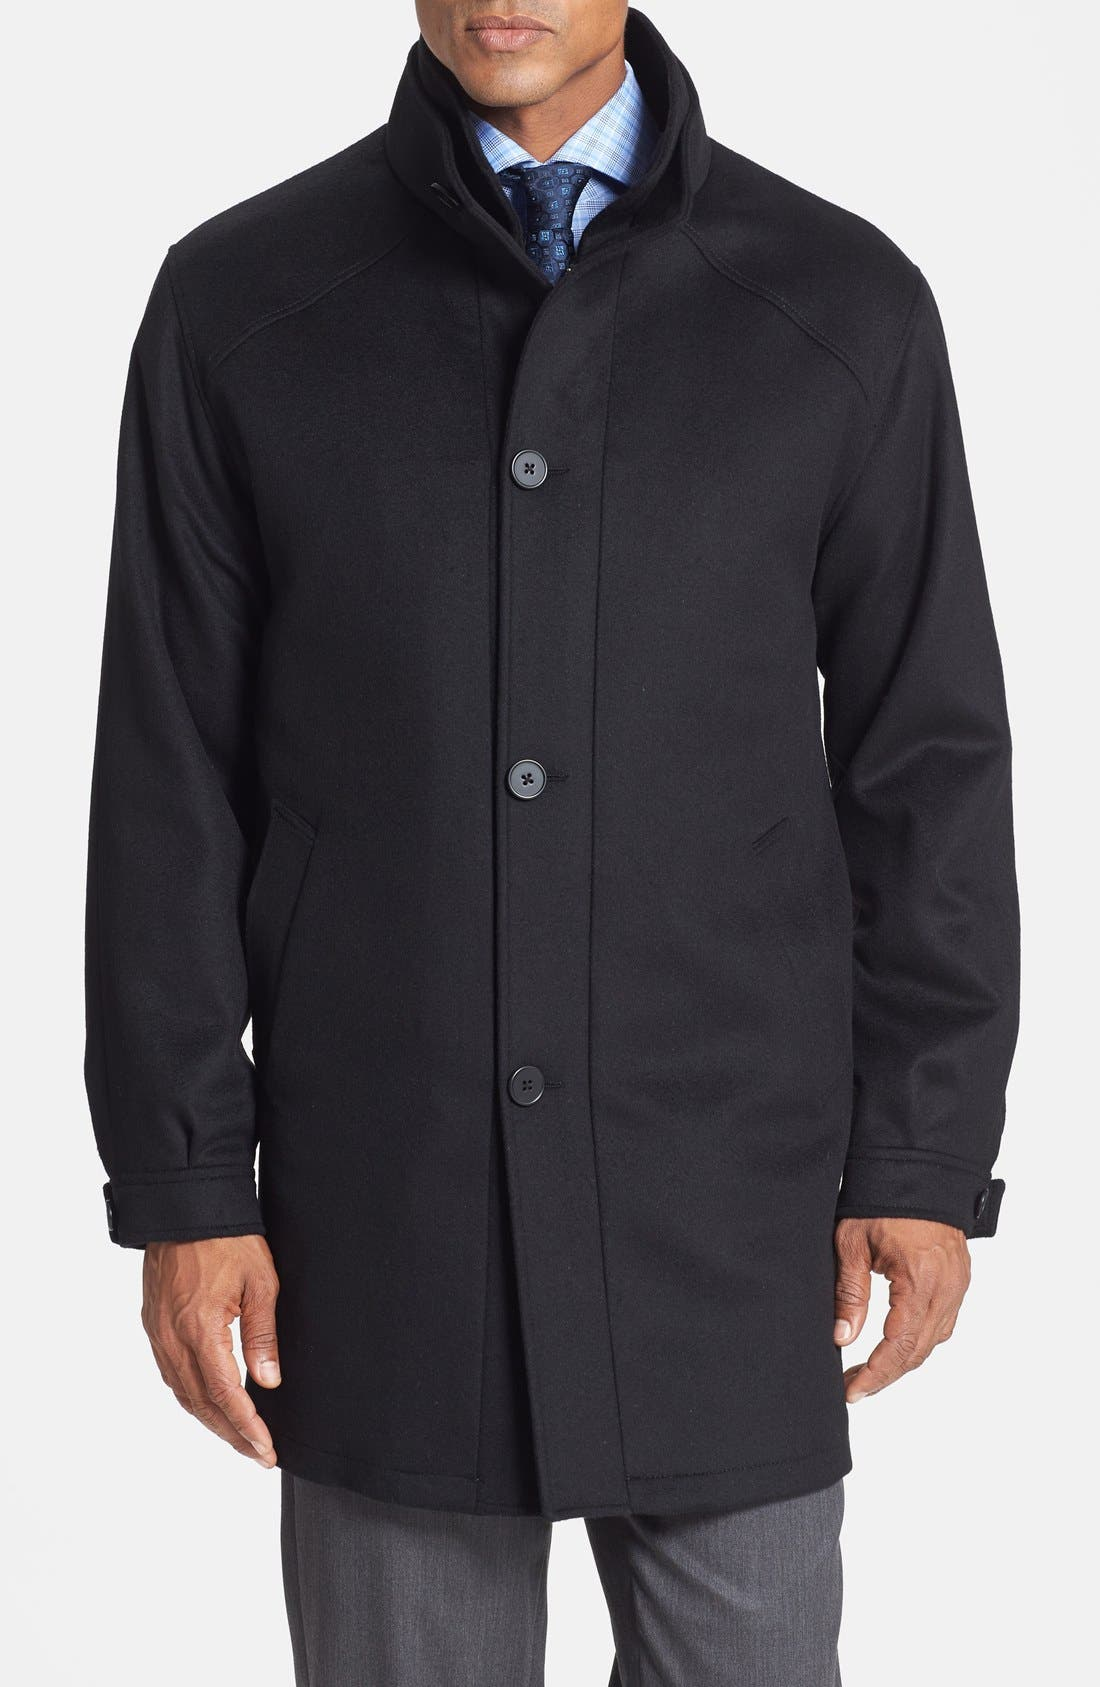 Main Image - Cardinal of Canada Classic Fit Wool Blend Topcoat